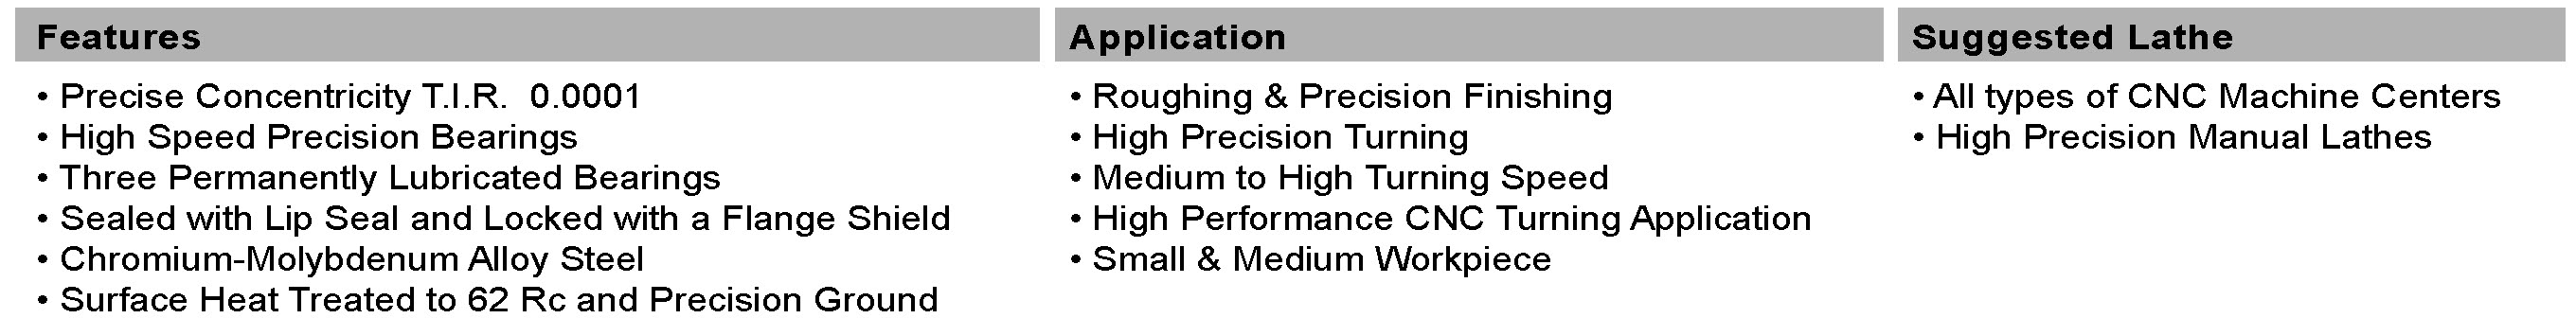 cnc-specs-overview.jpg